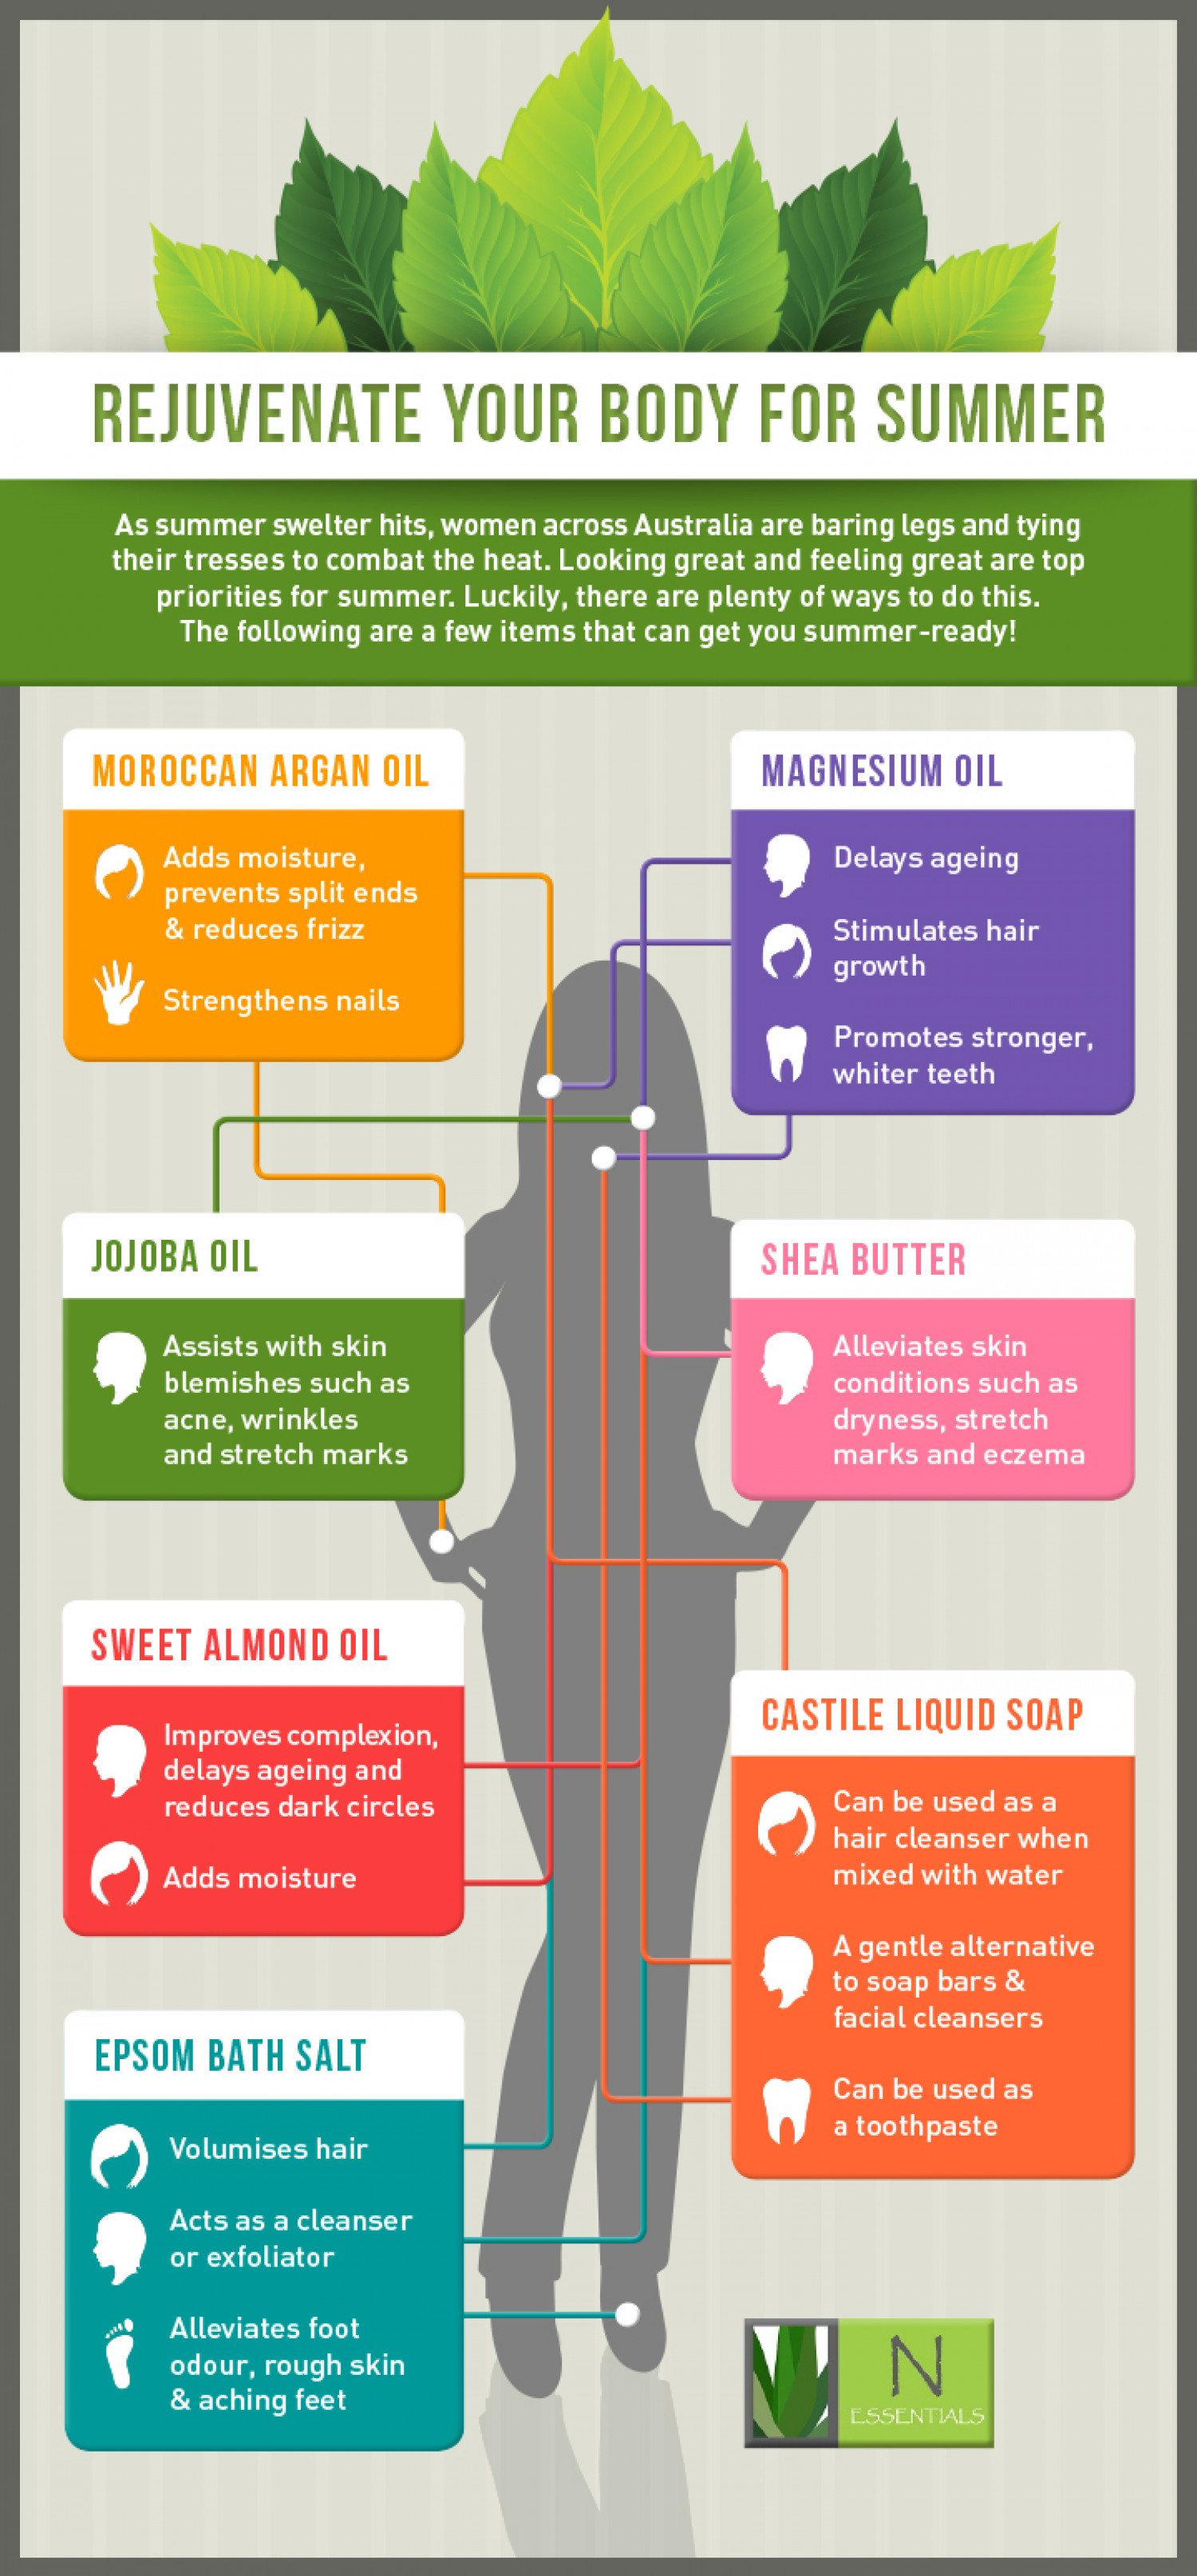 Rejuvenate your body for summer Infographic